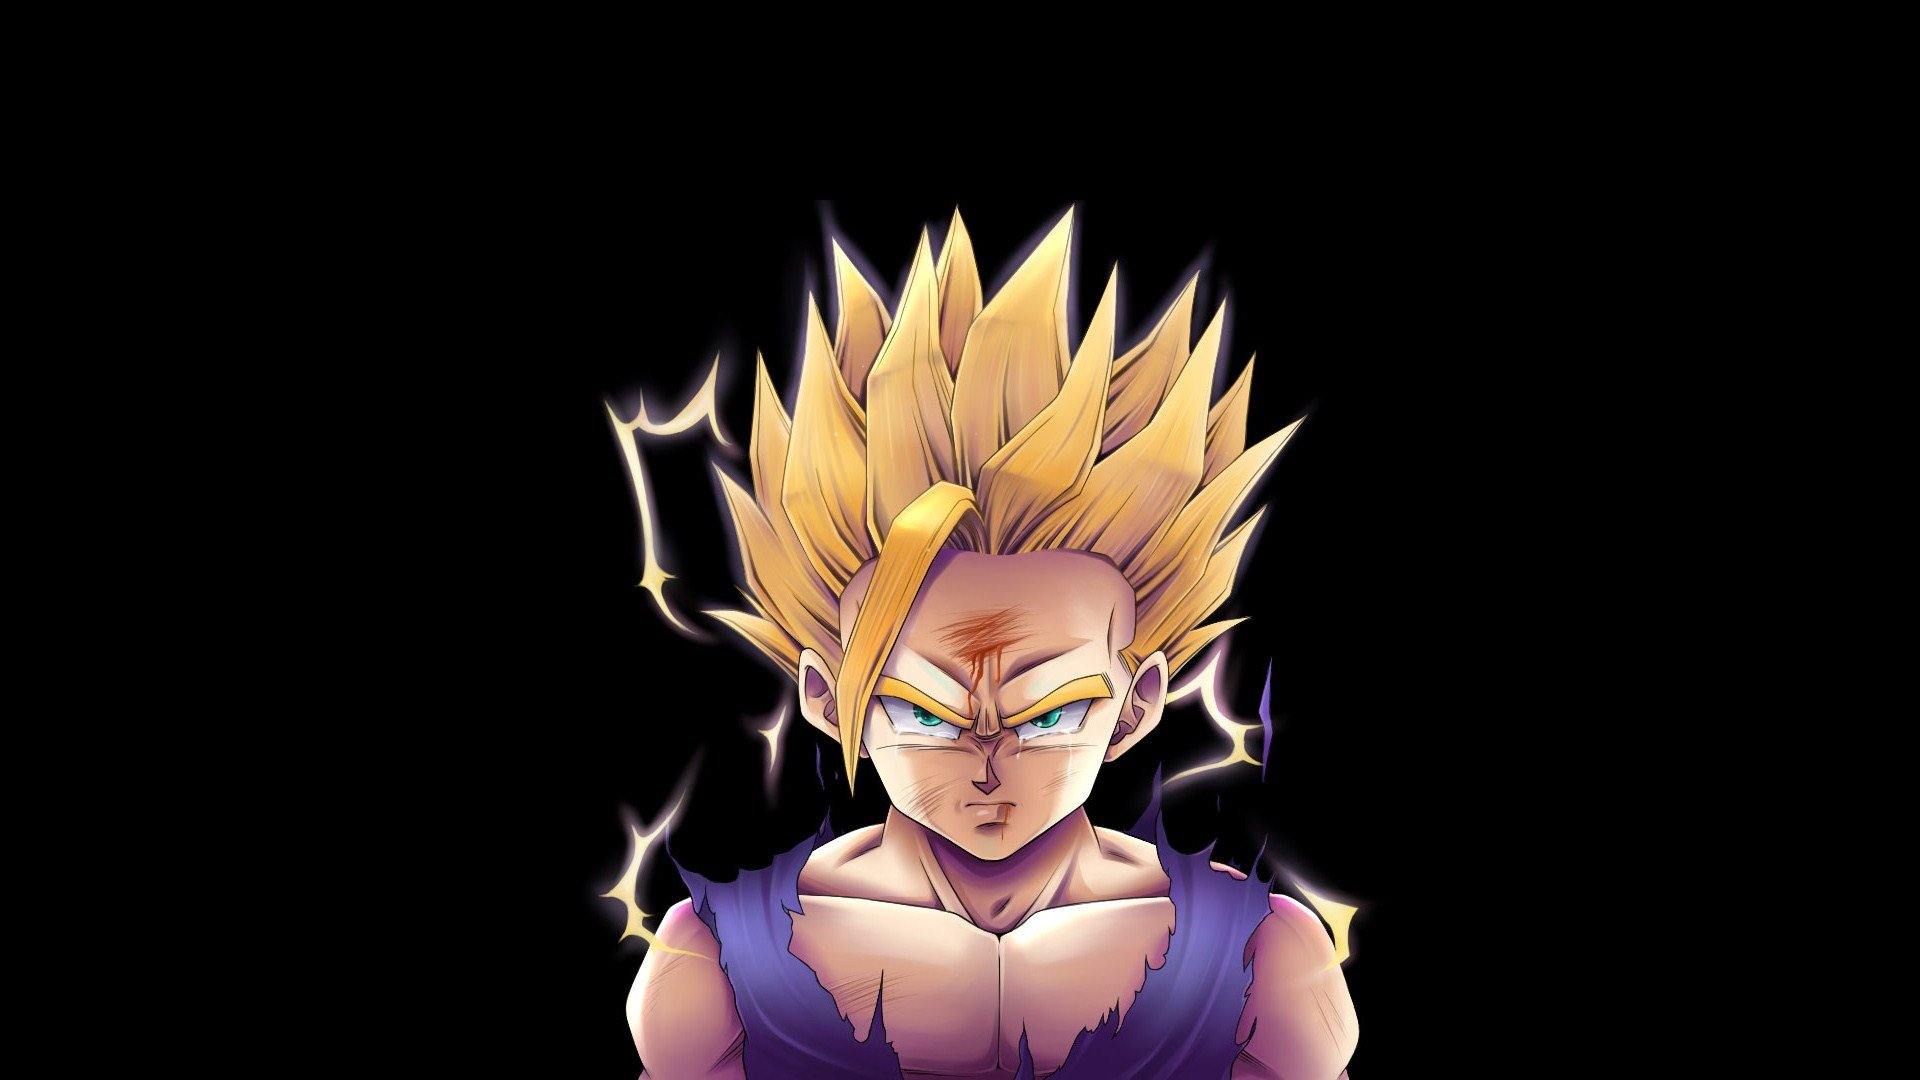 Son gohan dragon ball z wallpaper 1920x1080 320987 - Dragon ball super background music mp3 download ...